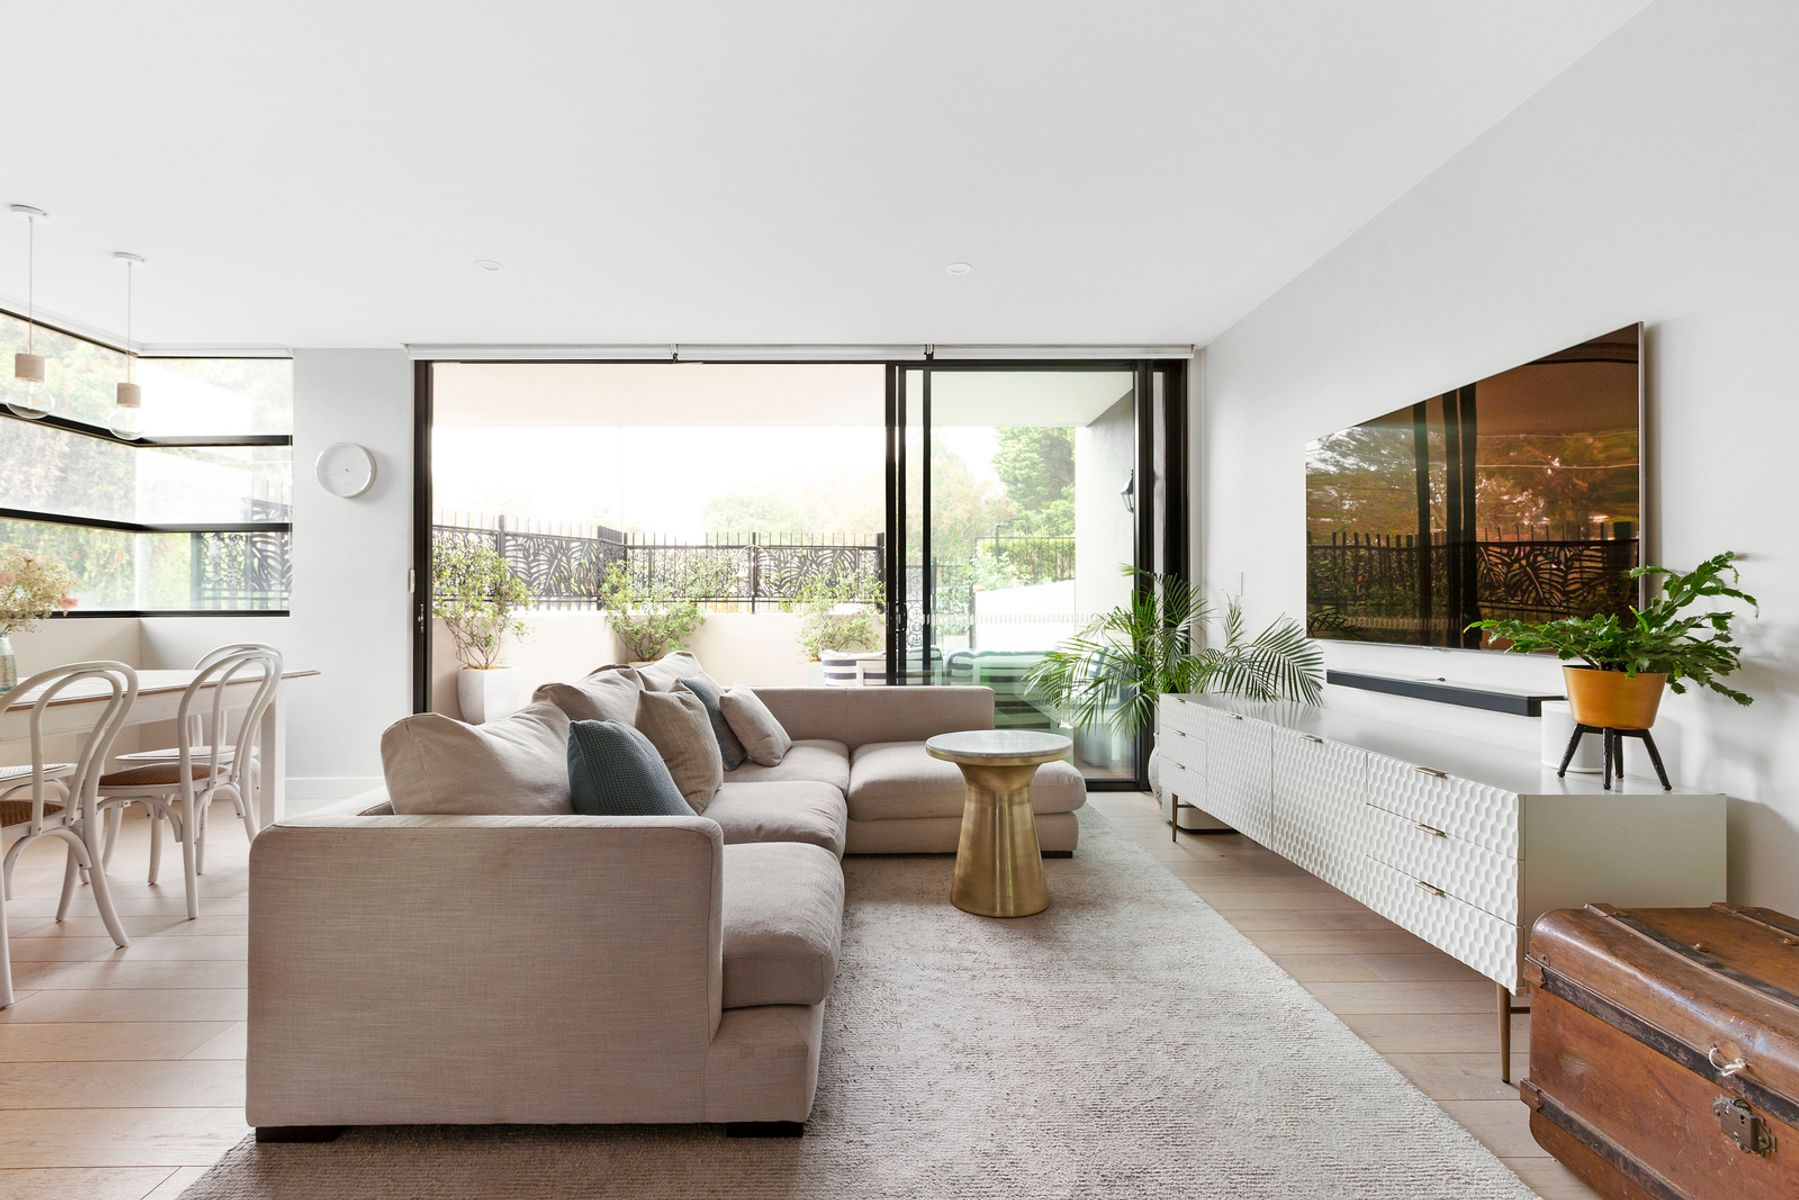 26/600 Mowbray Road West